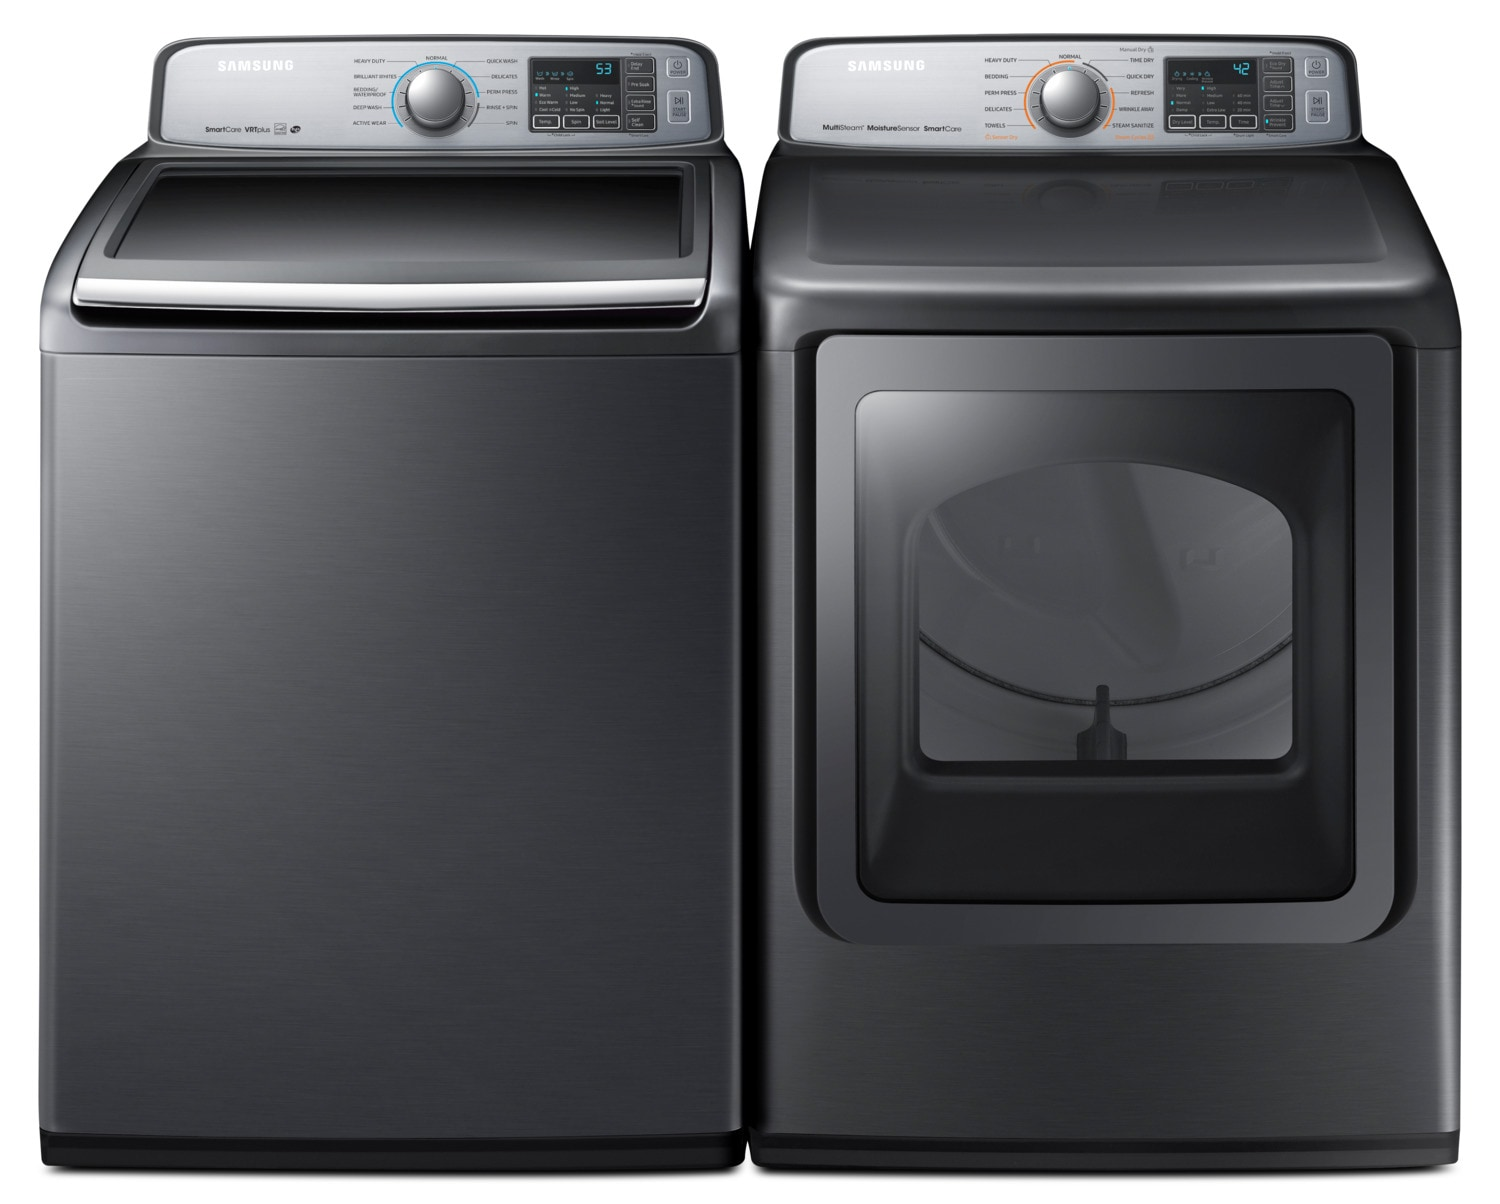 Washers and Dryers - Samsung 5.8 Cu. Ft. Top-Load Washer and 7.4 Cu. Ft. Multi-Steam™ Electric Dryer